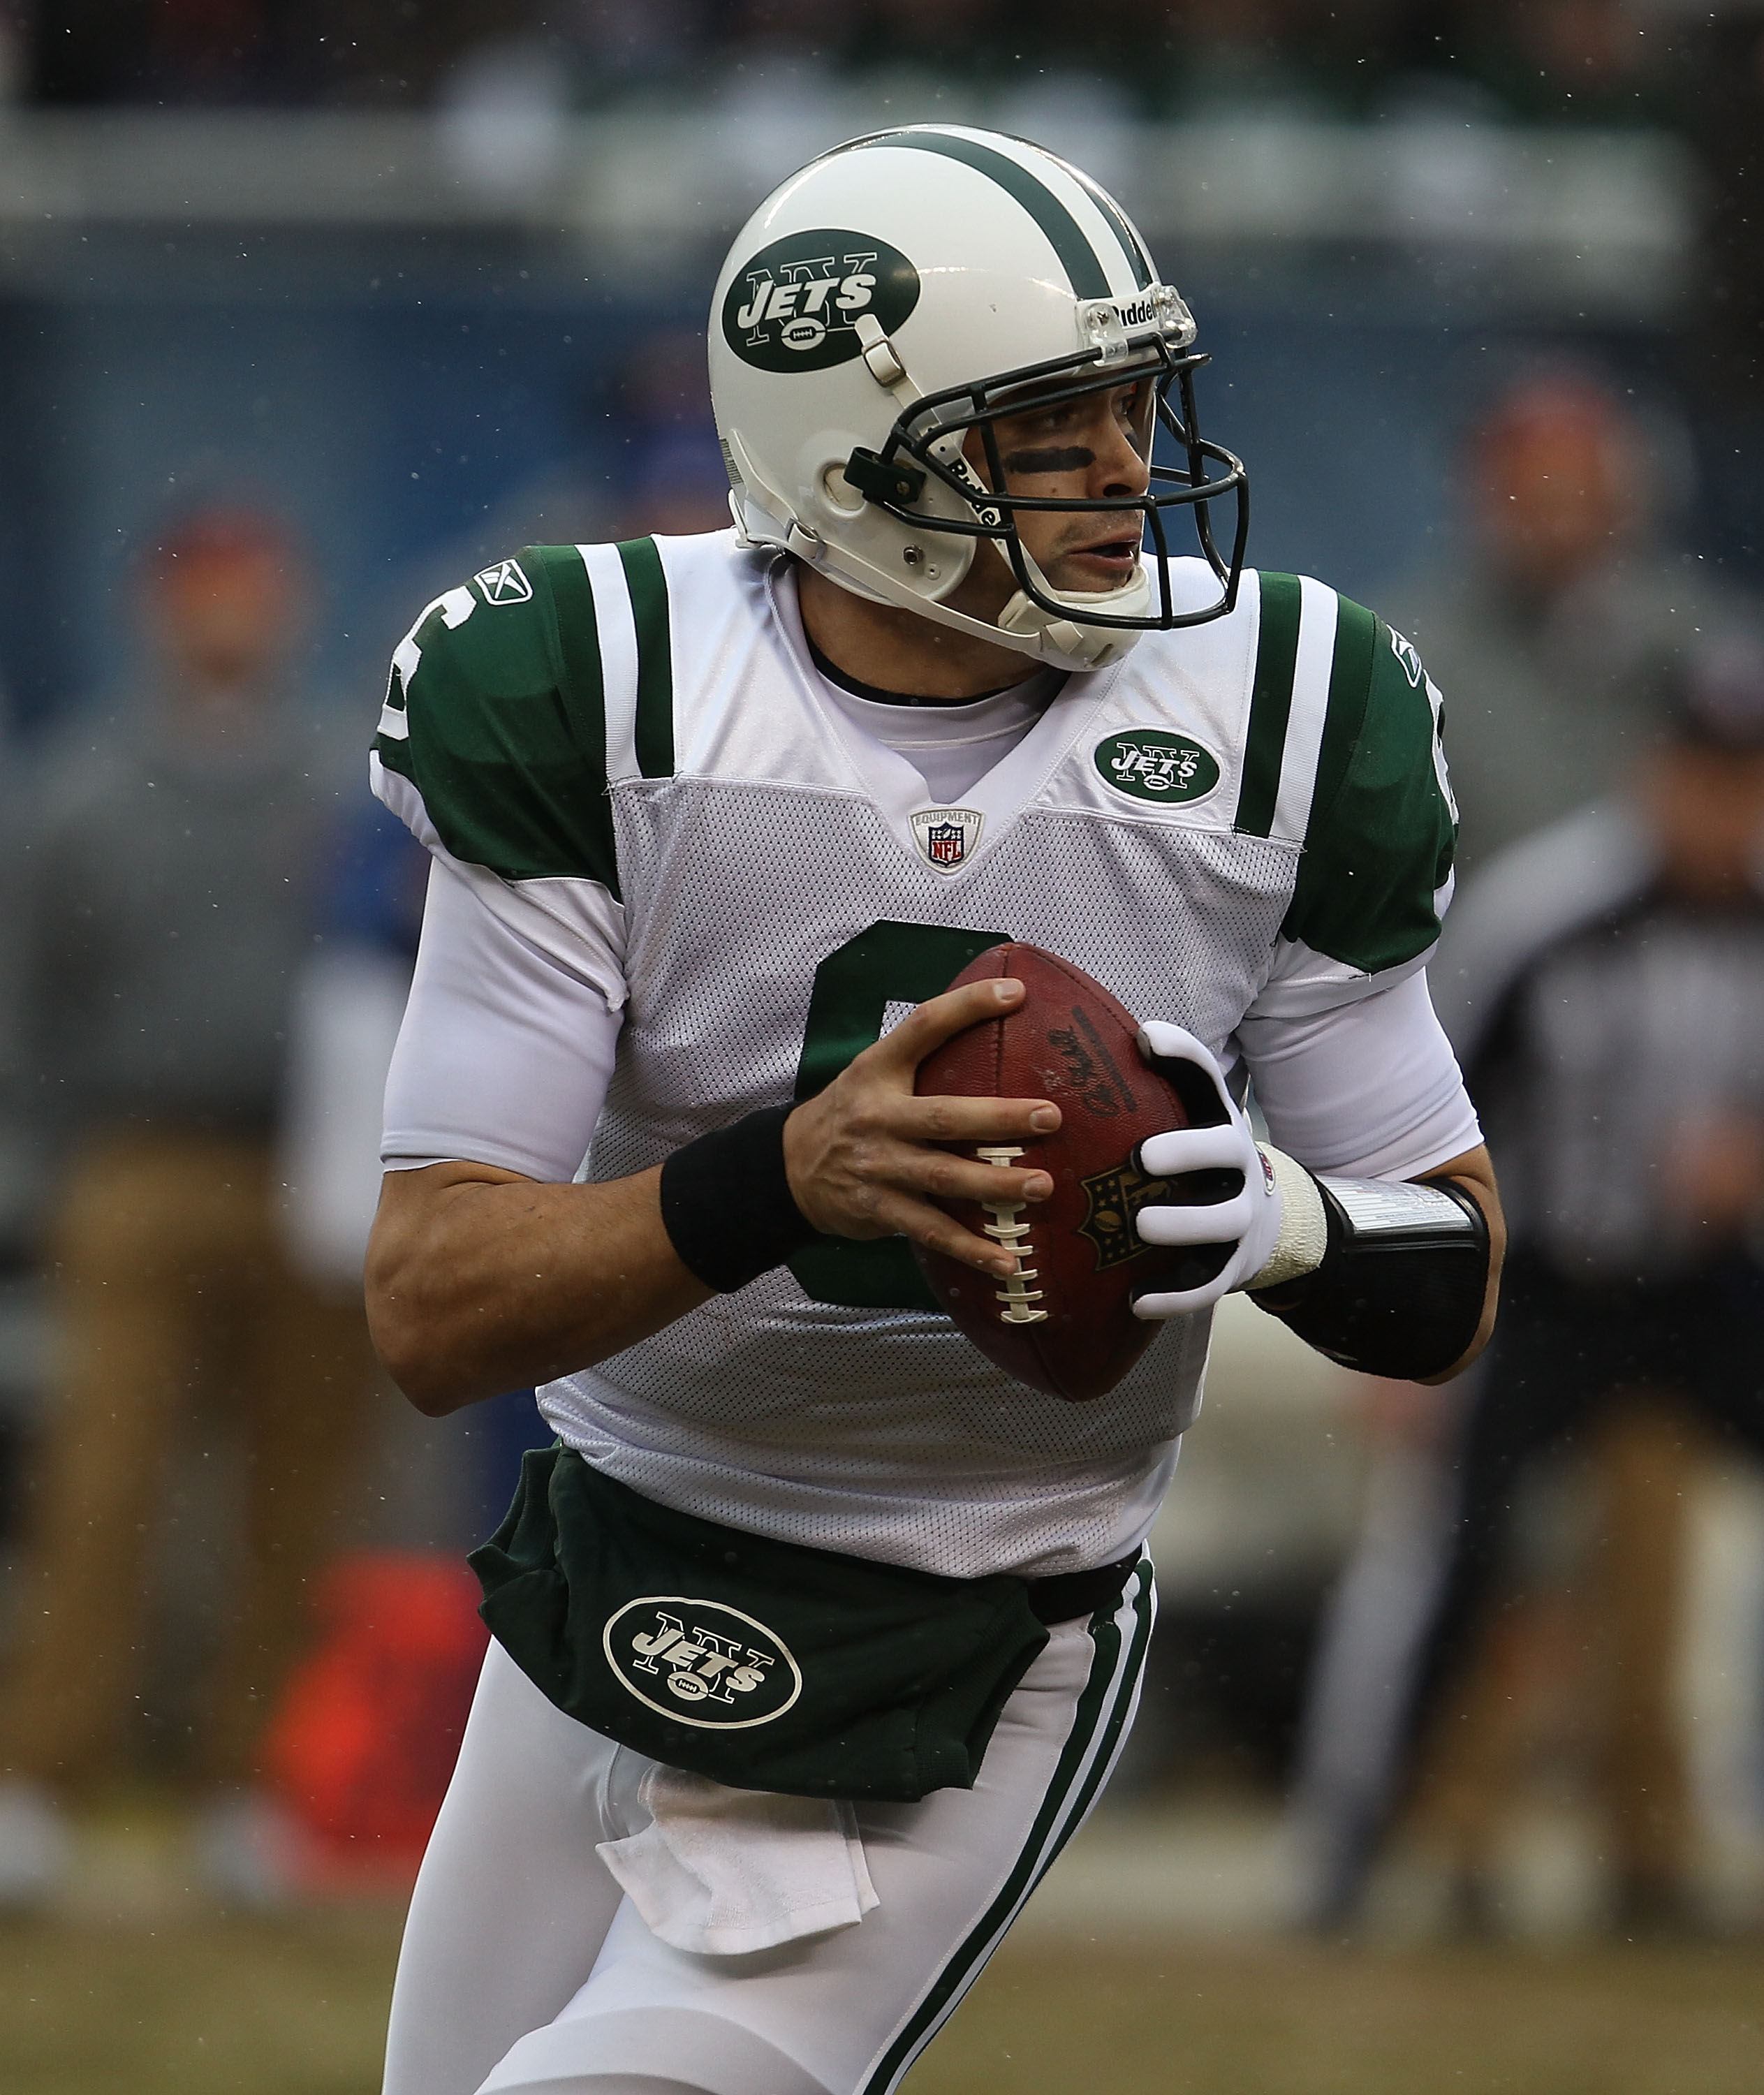 CHICAGO, IL - DECEMBER 26: Mark Sanchez #6 of the New York Jets rolls out to look for a receiver against the Chicago Bears at Soldier Field on December 26, 2010 in Chicago, Illinois. The Bears defeated the Jets 38-34. (Photo by Jonathan Daniel/Getty Image